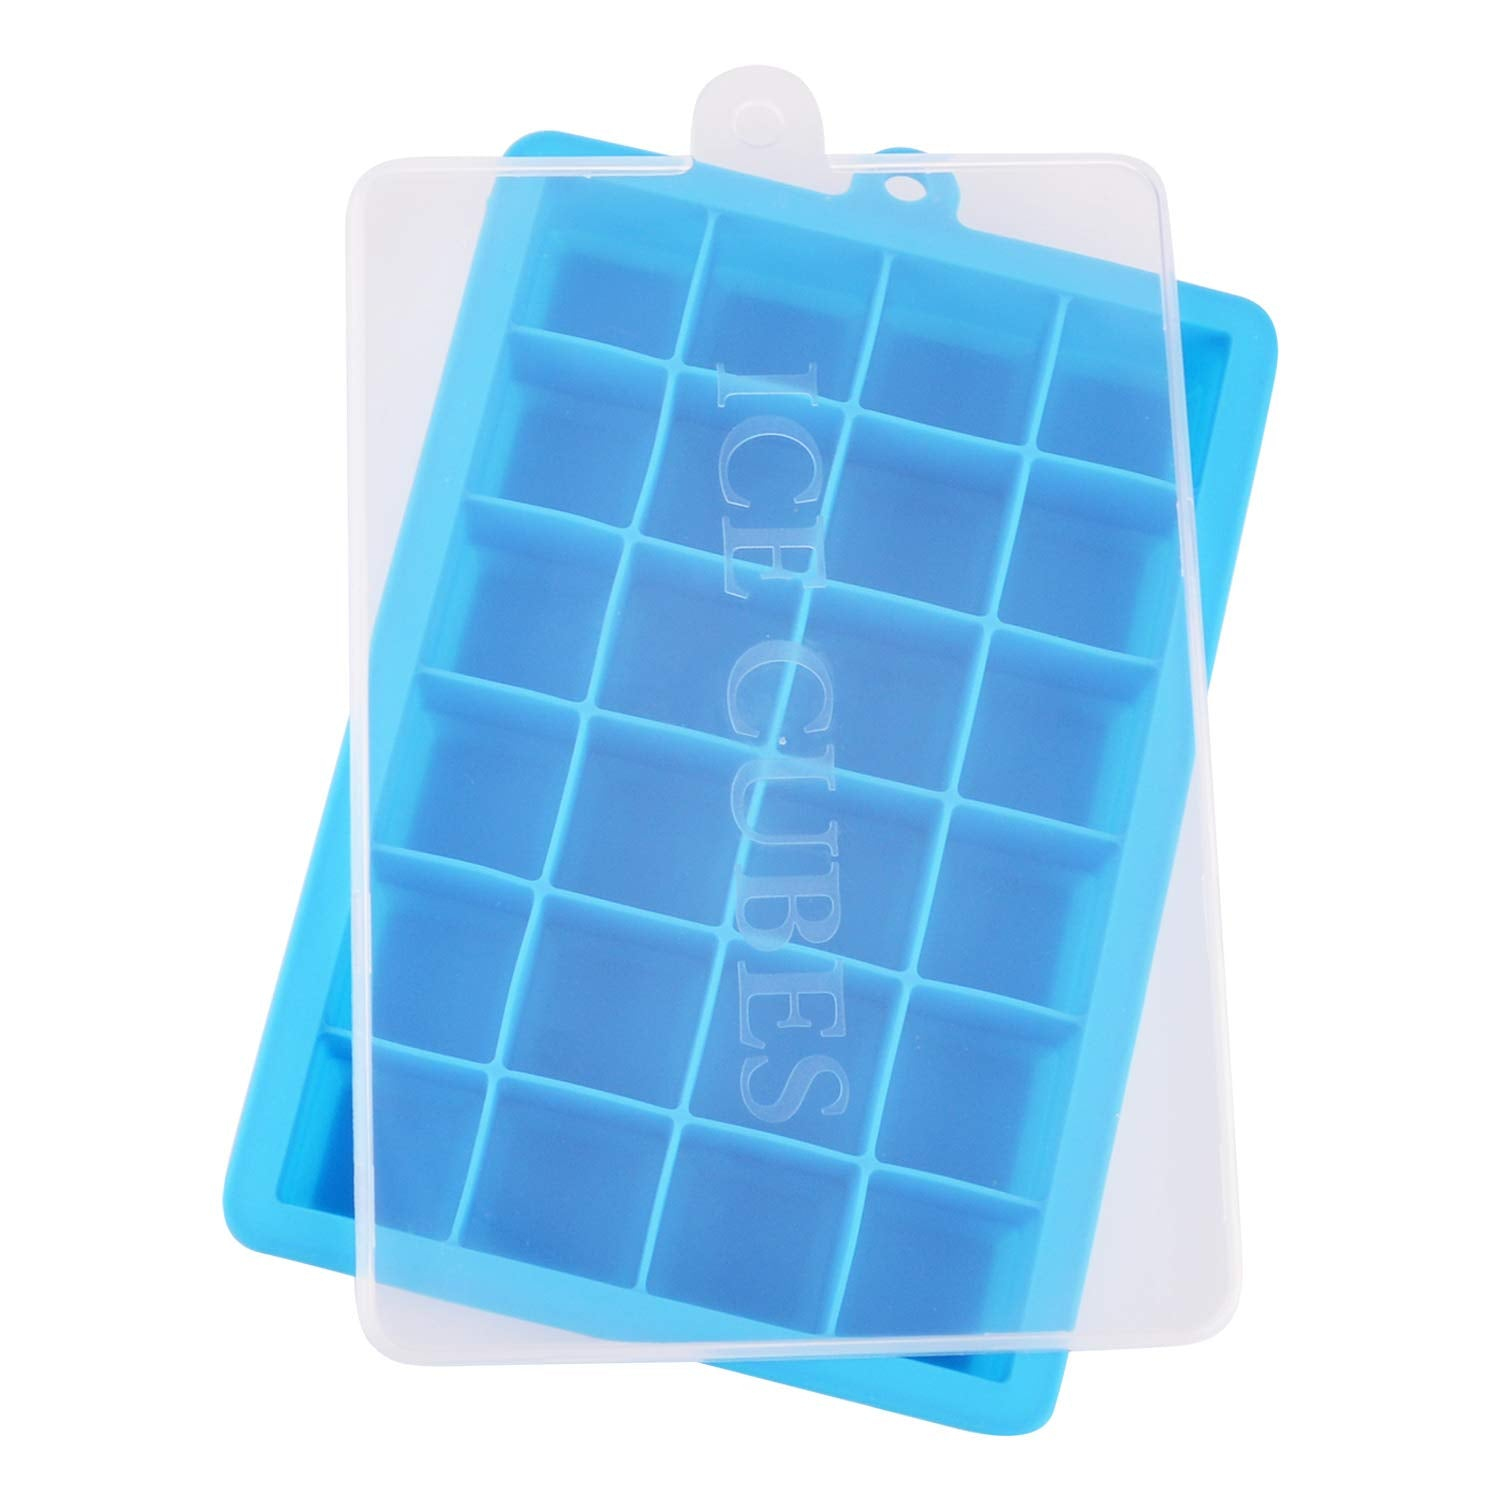 Ice Cube Tray, Silicone Ice Tray Molds Easy Release Ice Jelly Pudding Maker Mold,24 Cavity (Sky Blue)